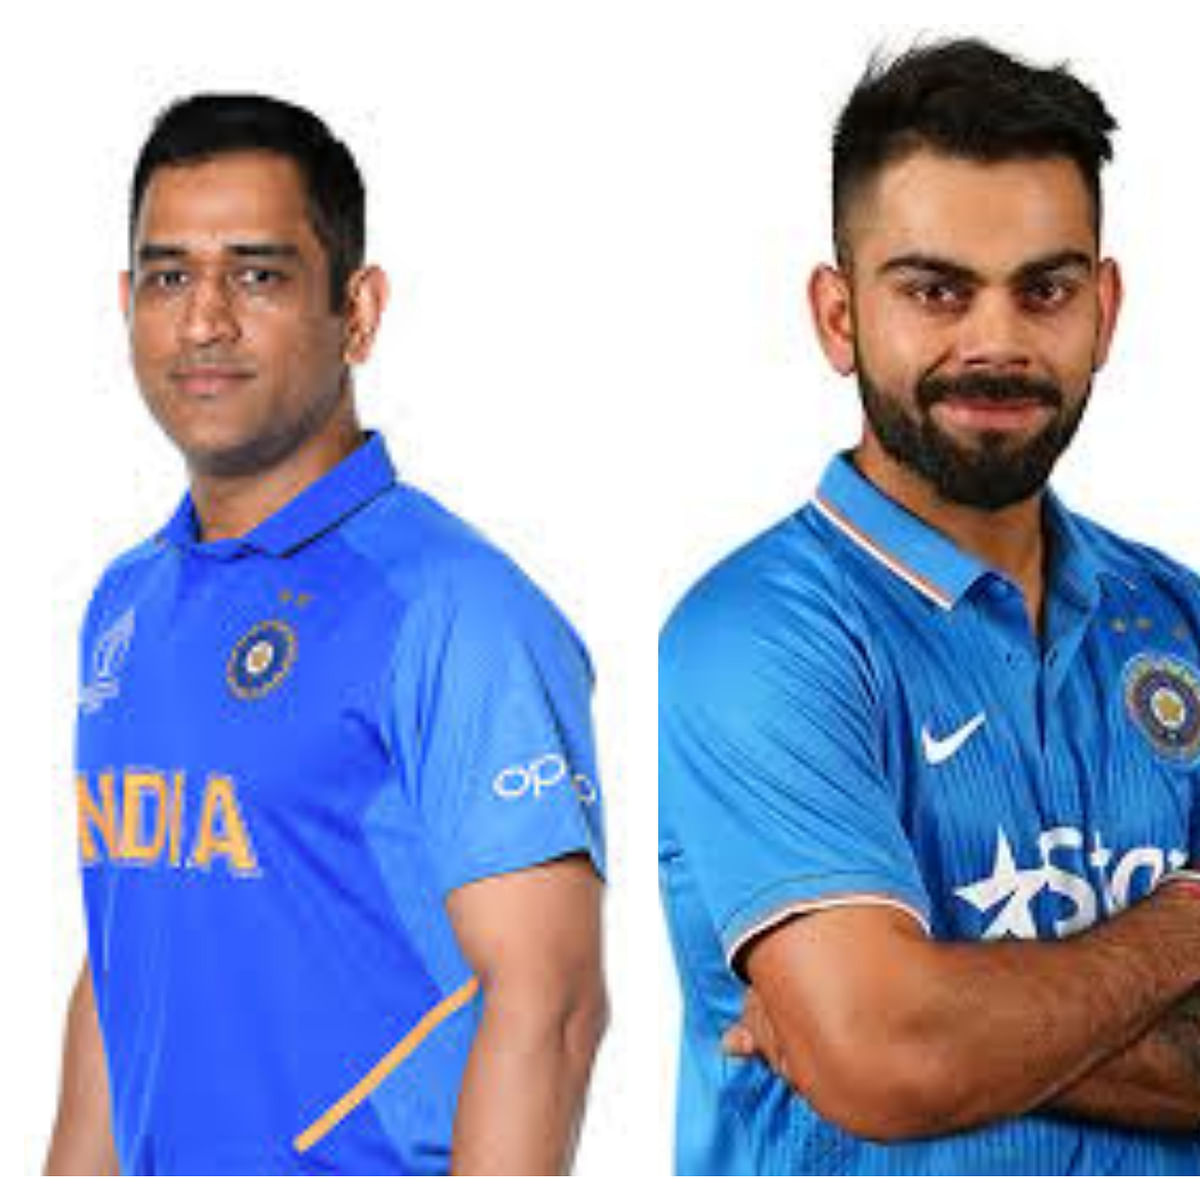 In Pictures: 5 Indian cricketers then vs now